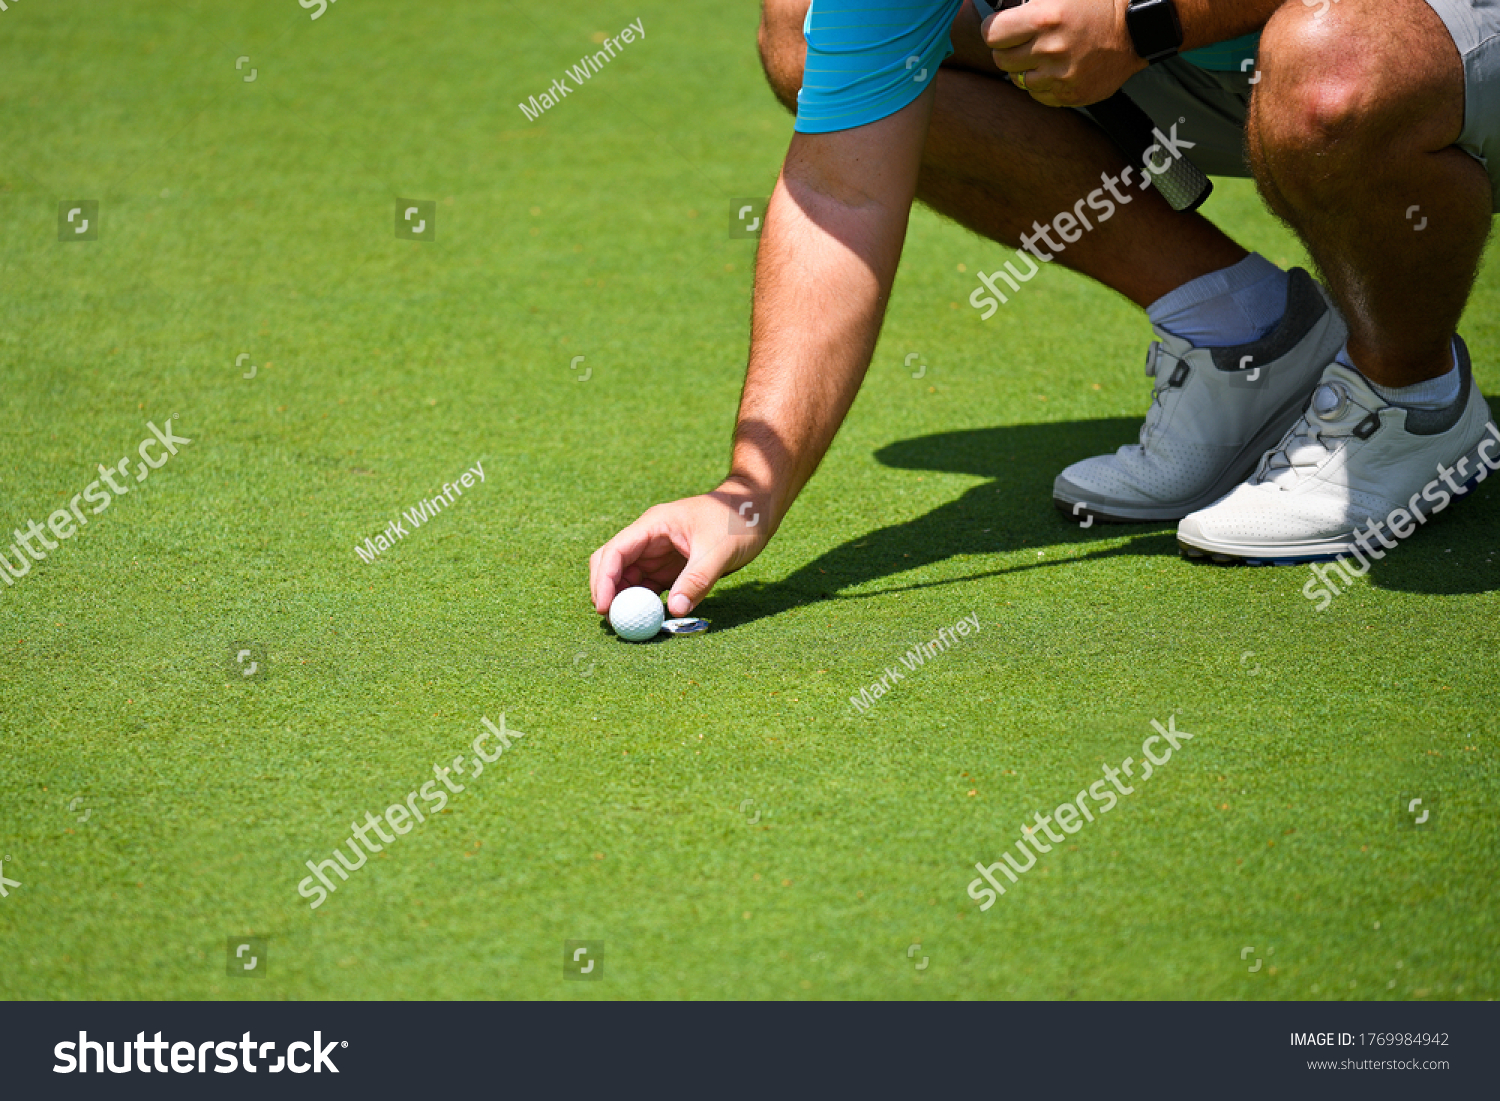 Young Man Kneeling Down and Placing his Golf Ball and Marker on the Putting Green.